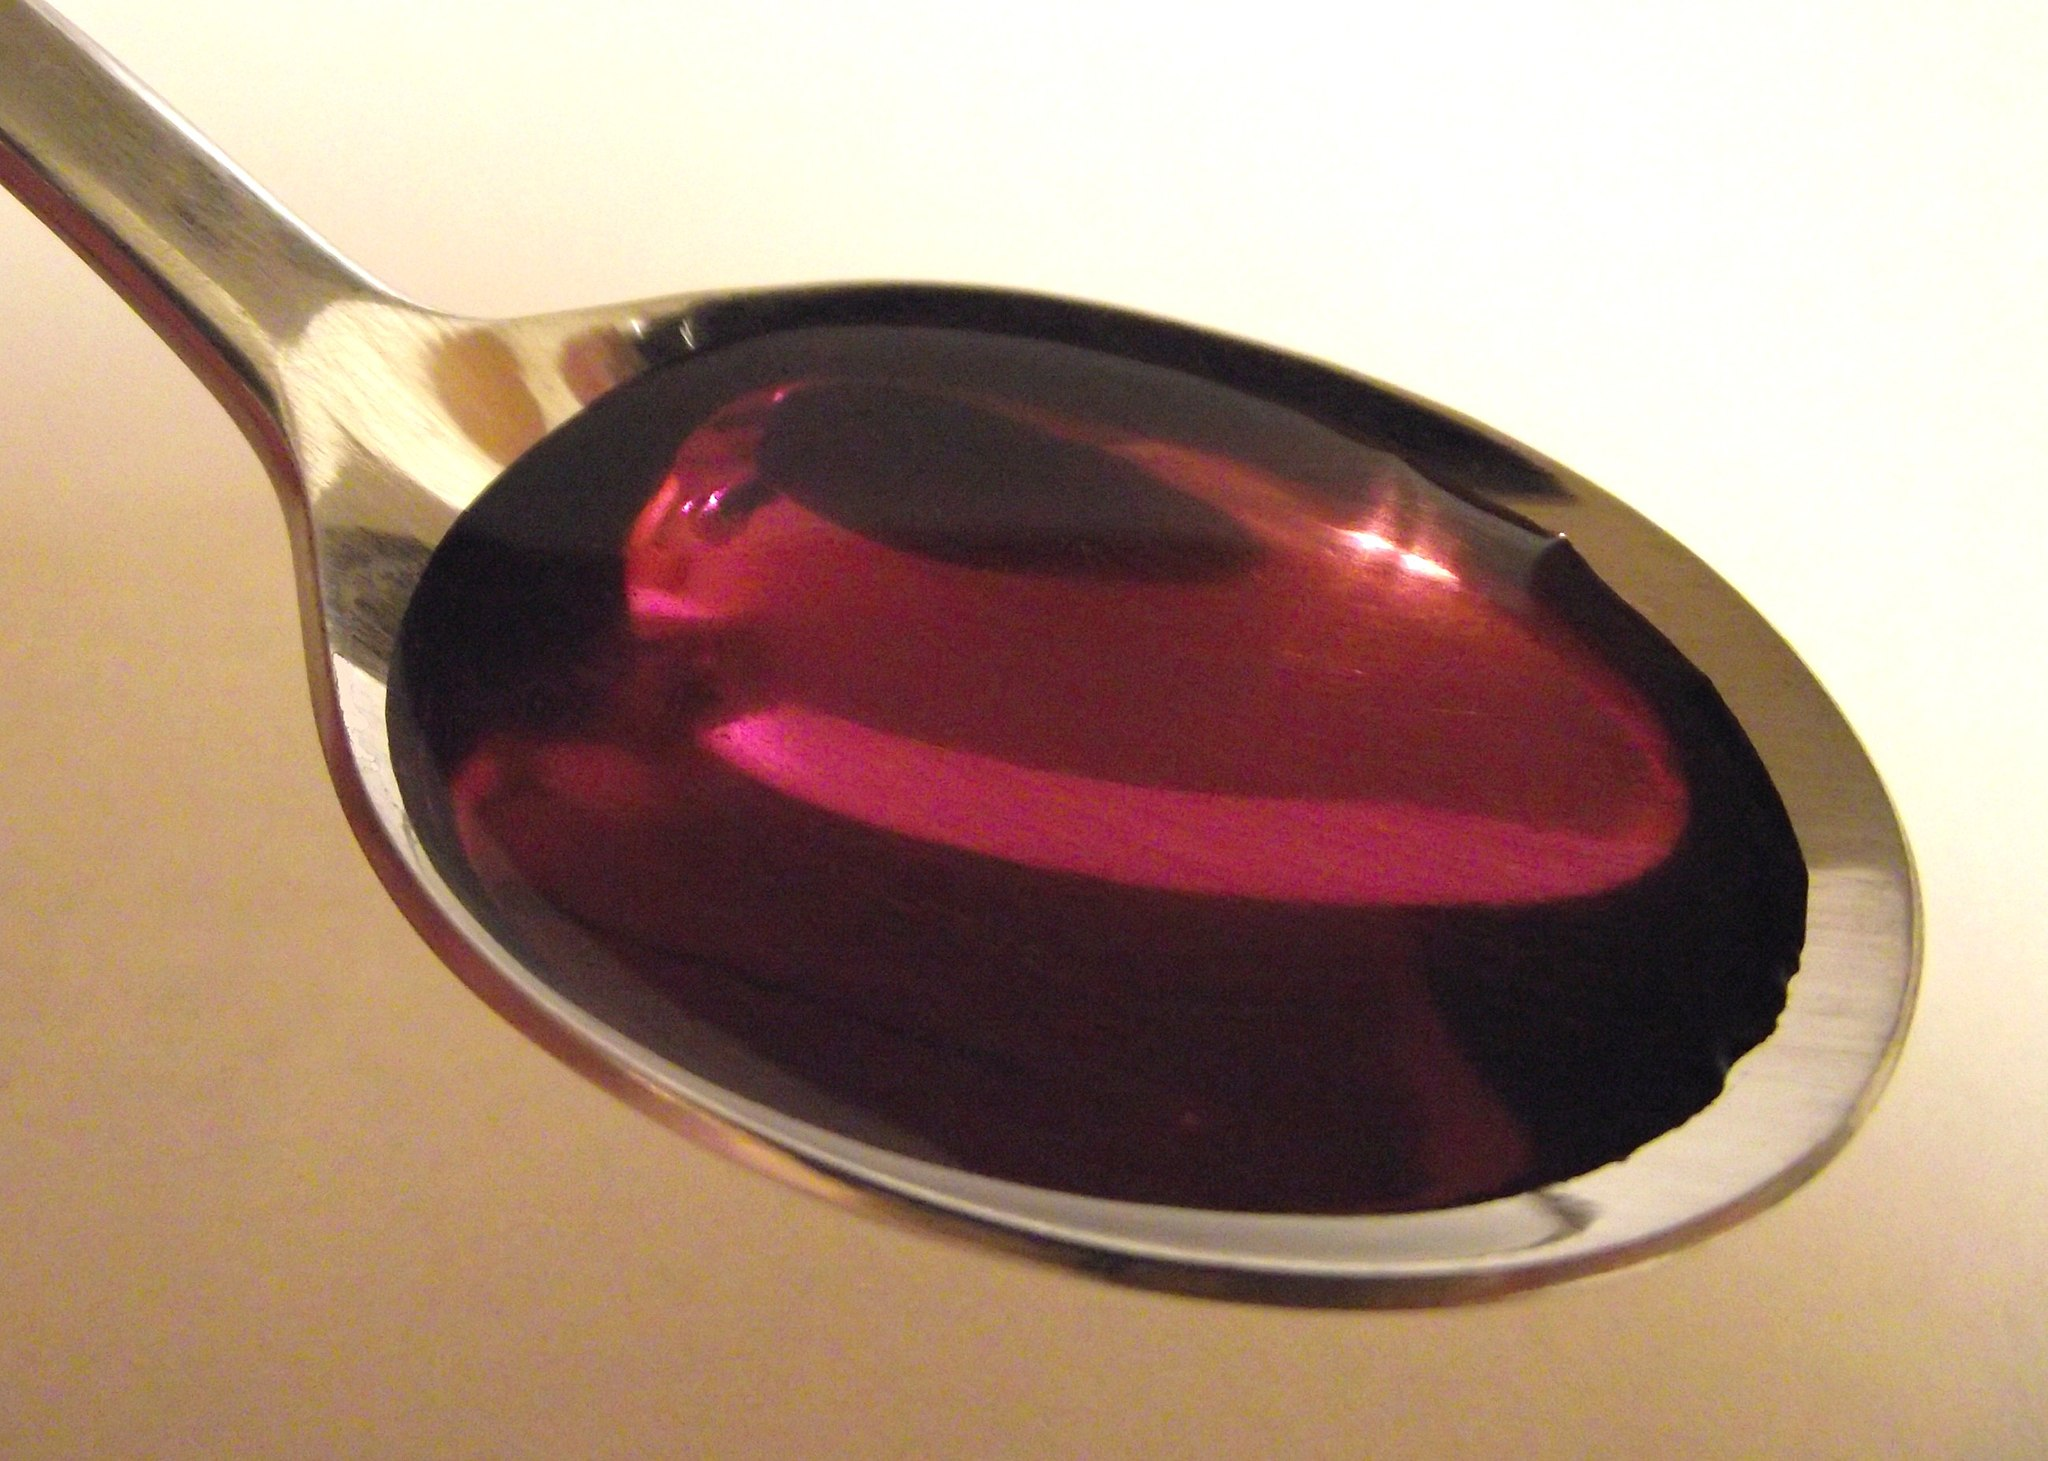 codeine-based cough syrup